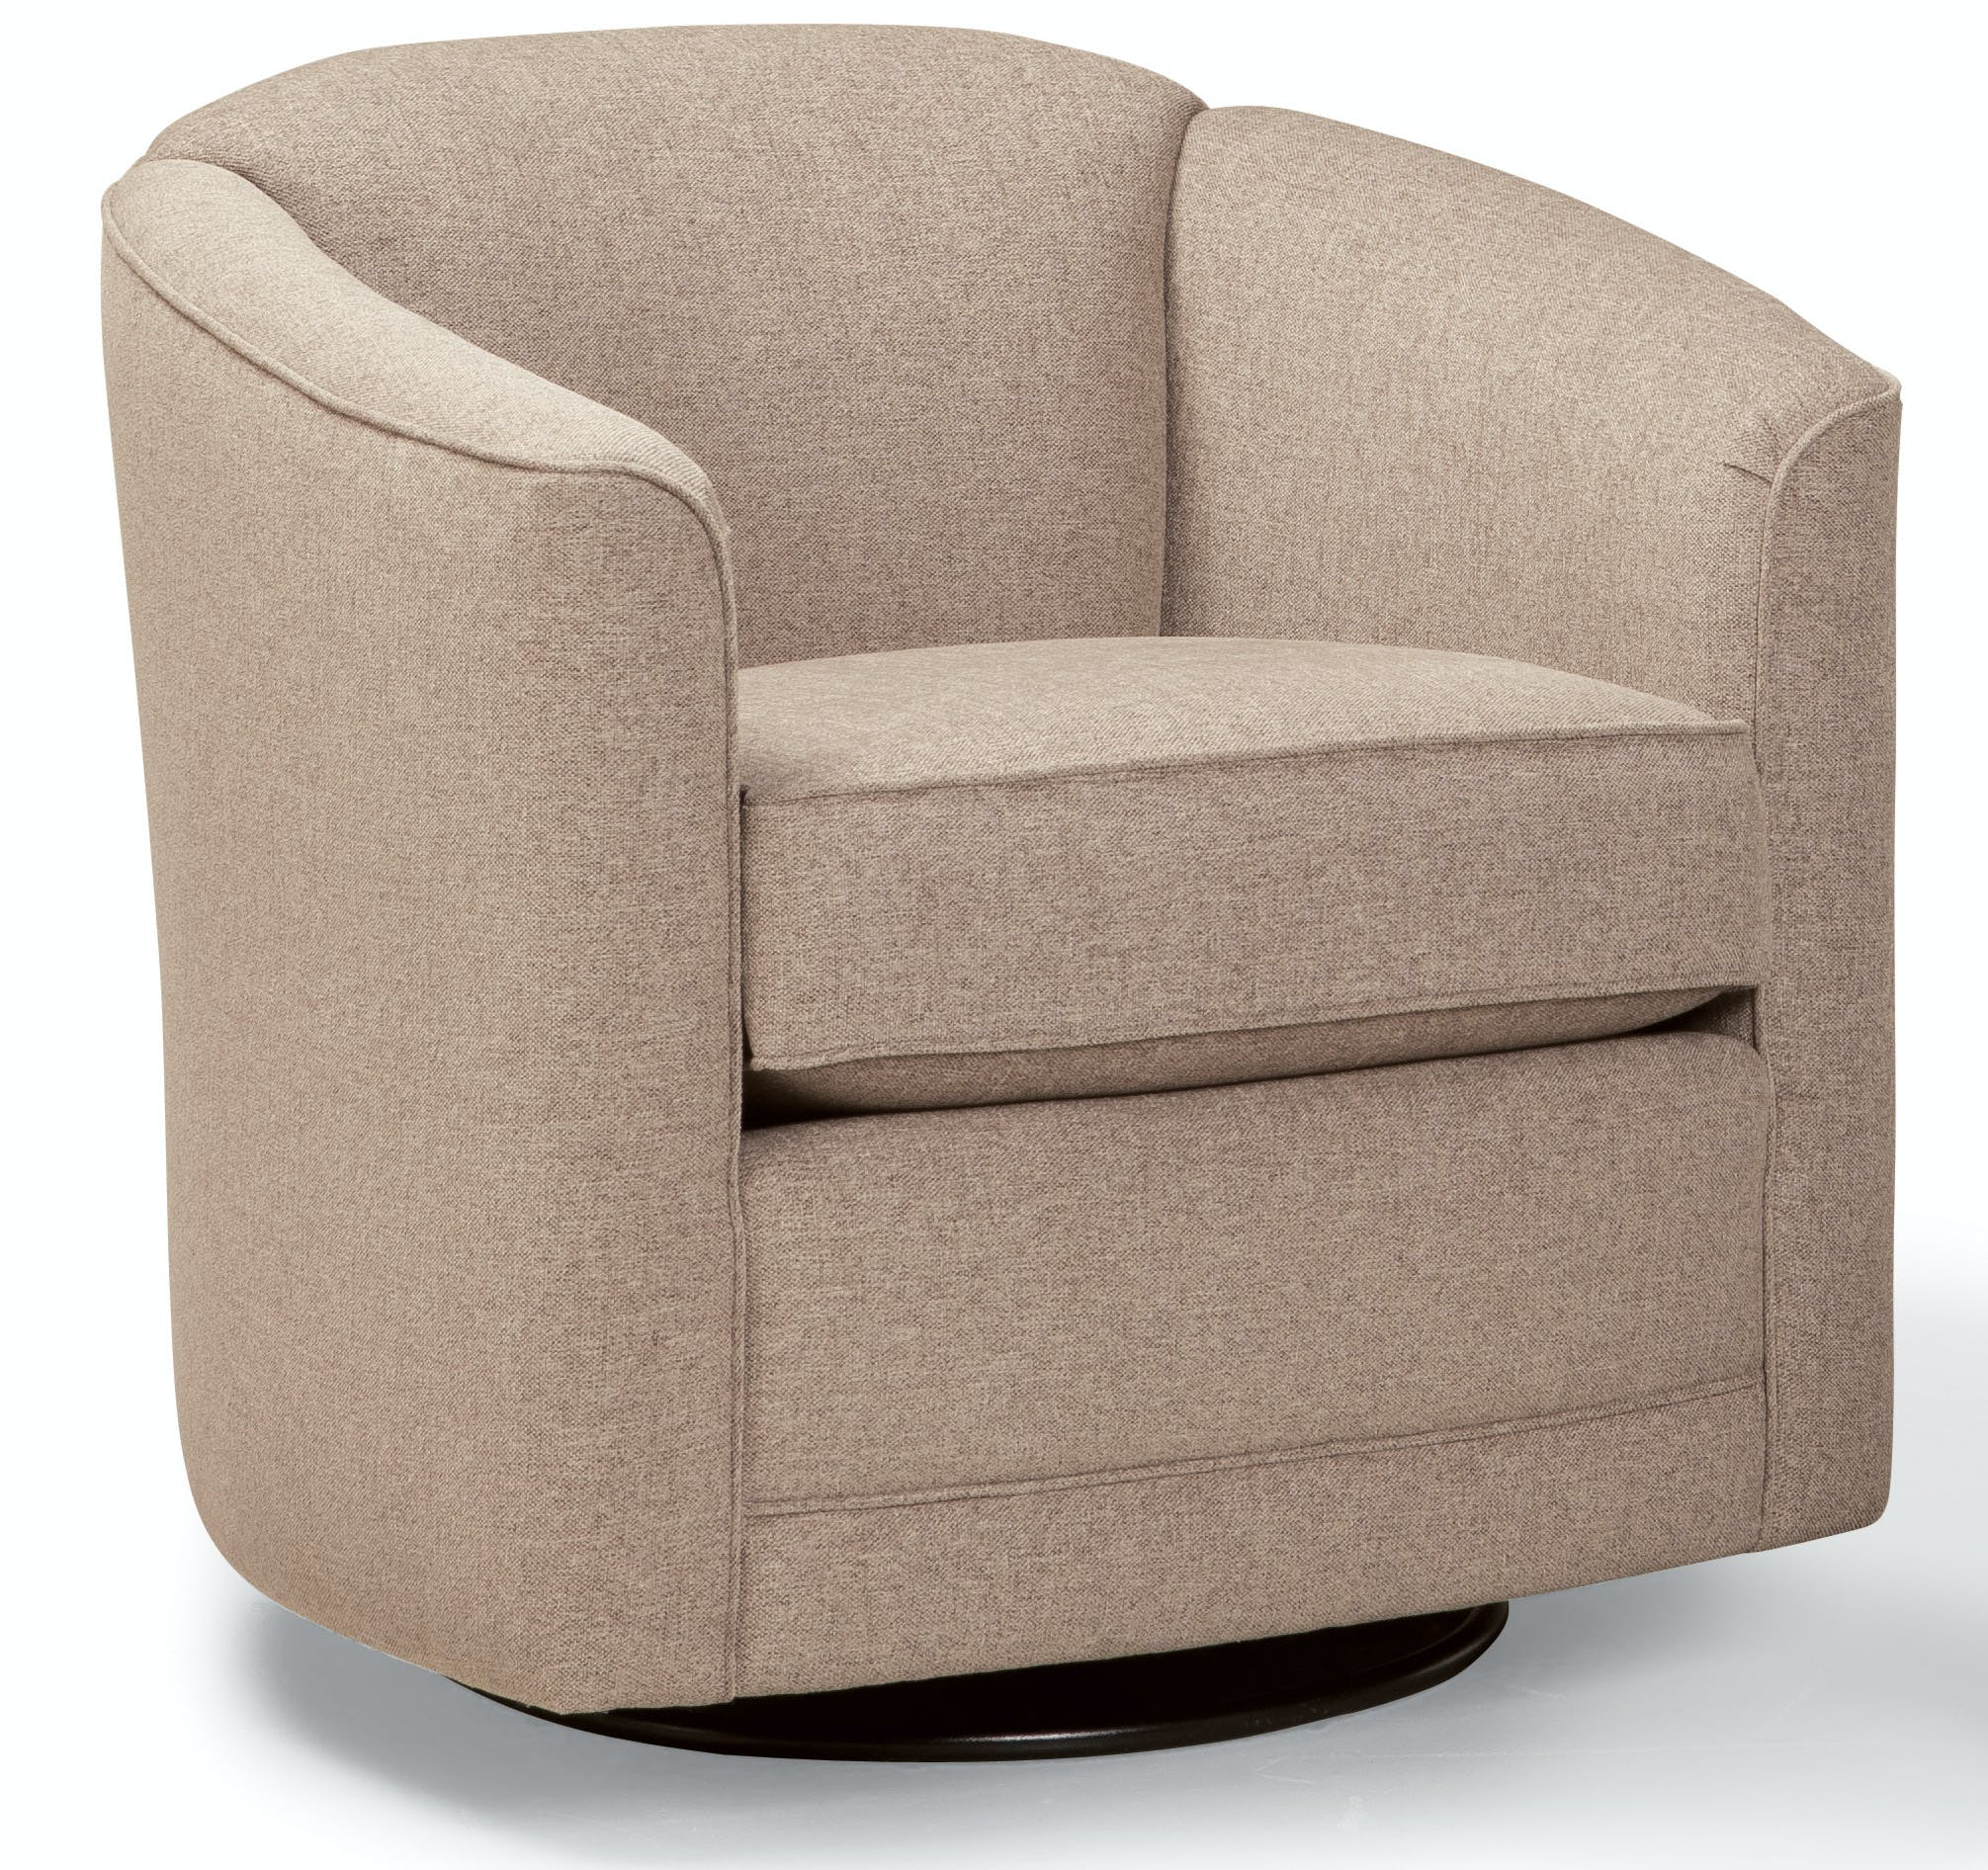 Smith Brothers Living Room Swivel Glider Chair 506 58 Whitley Furniture Raleigh Nc